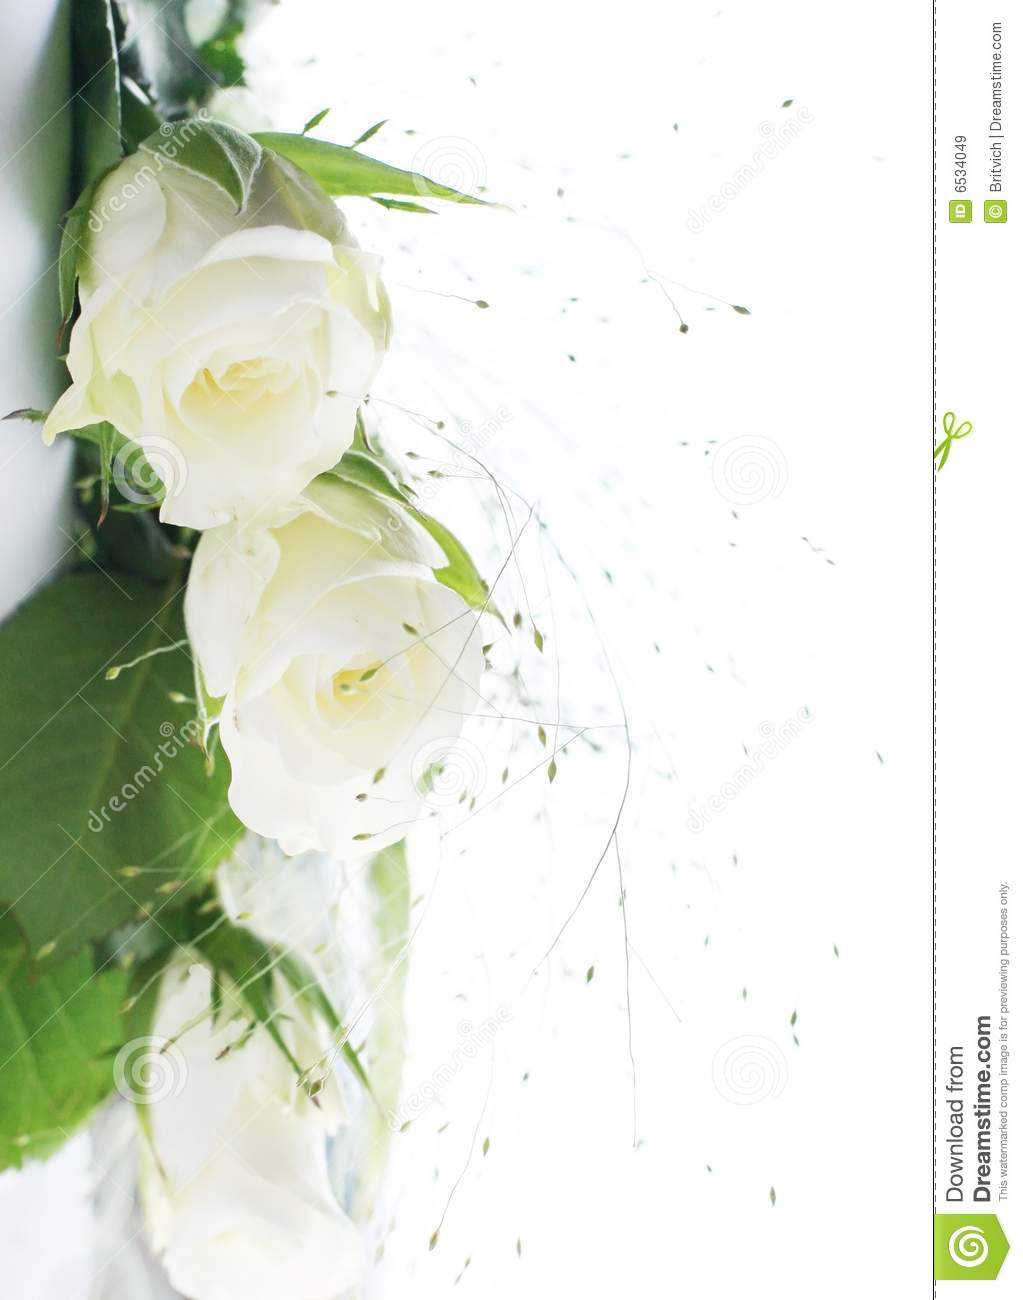 Frame Part With White Roses Stock Image - Image of drip, desire: 6534049